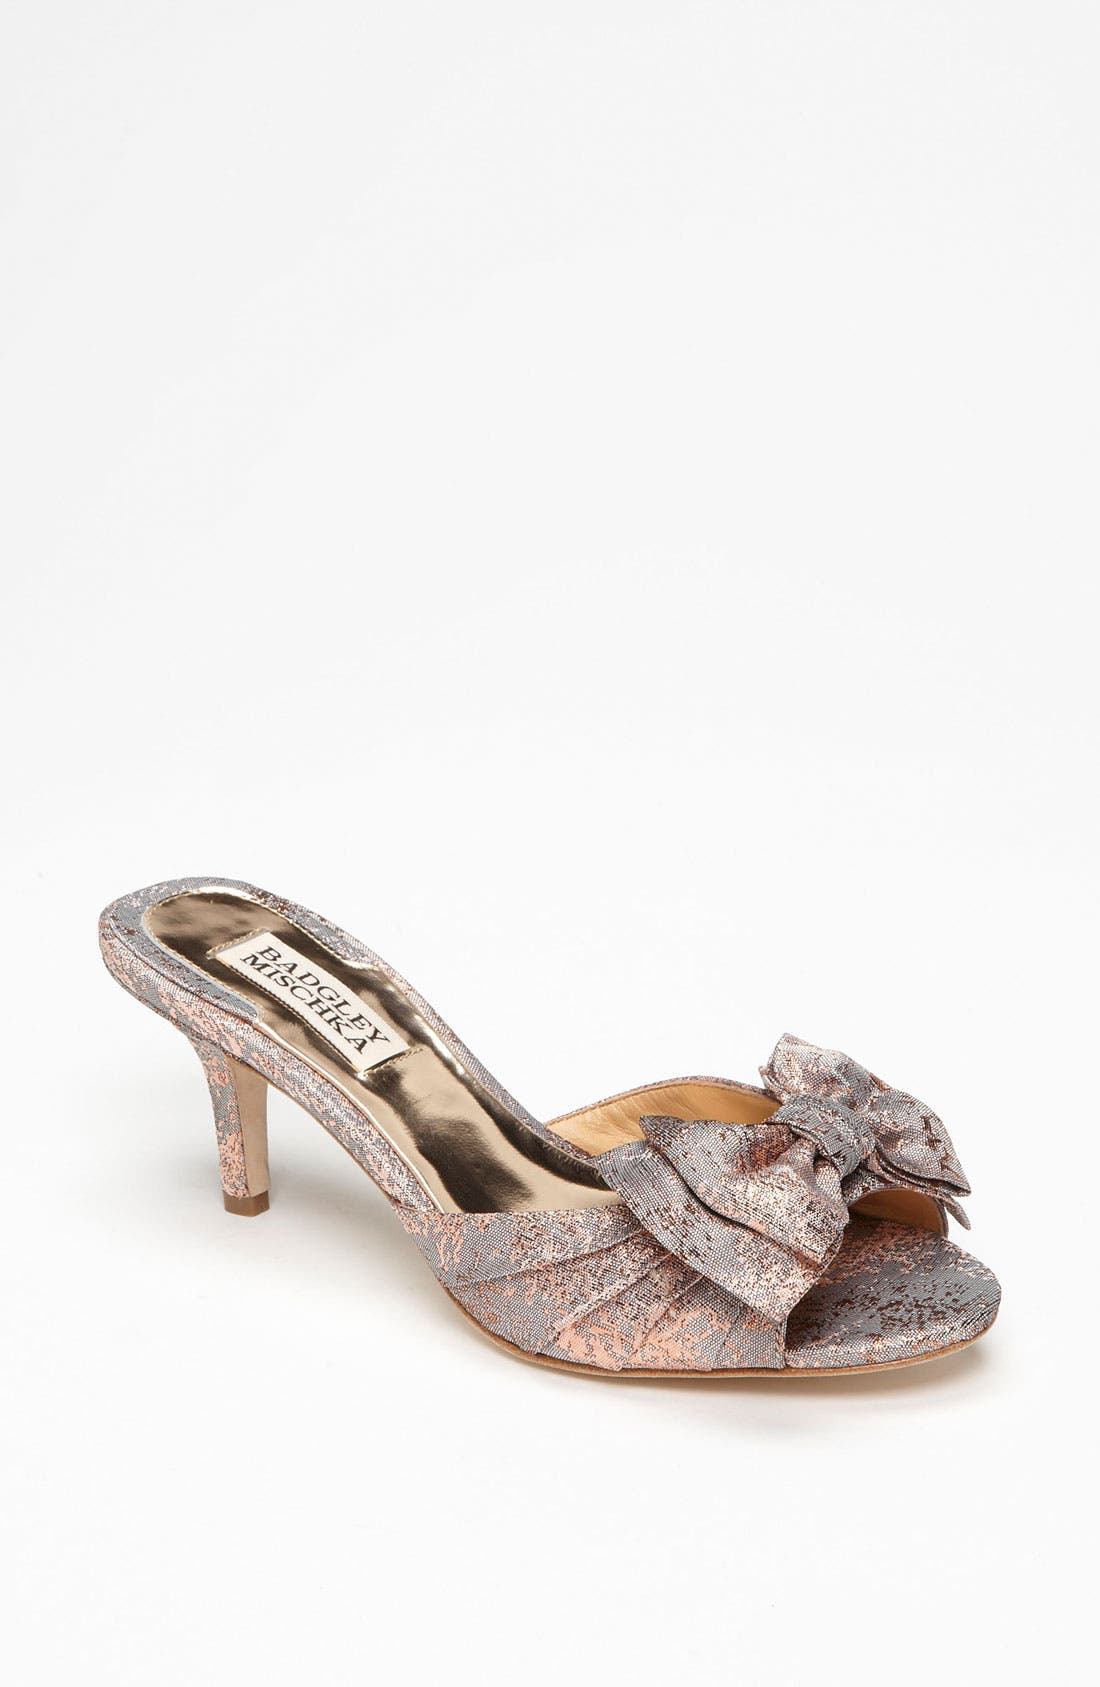 Main Image - Badgley Mischka 'Maddy' Slide